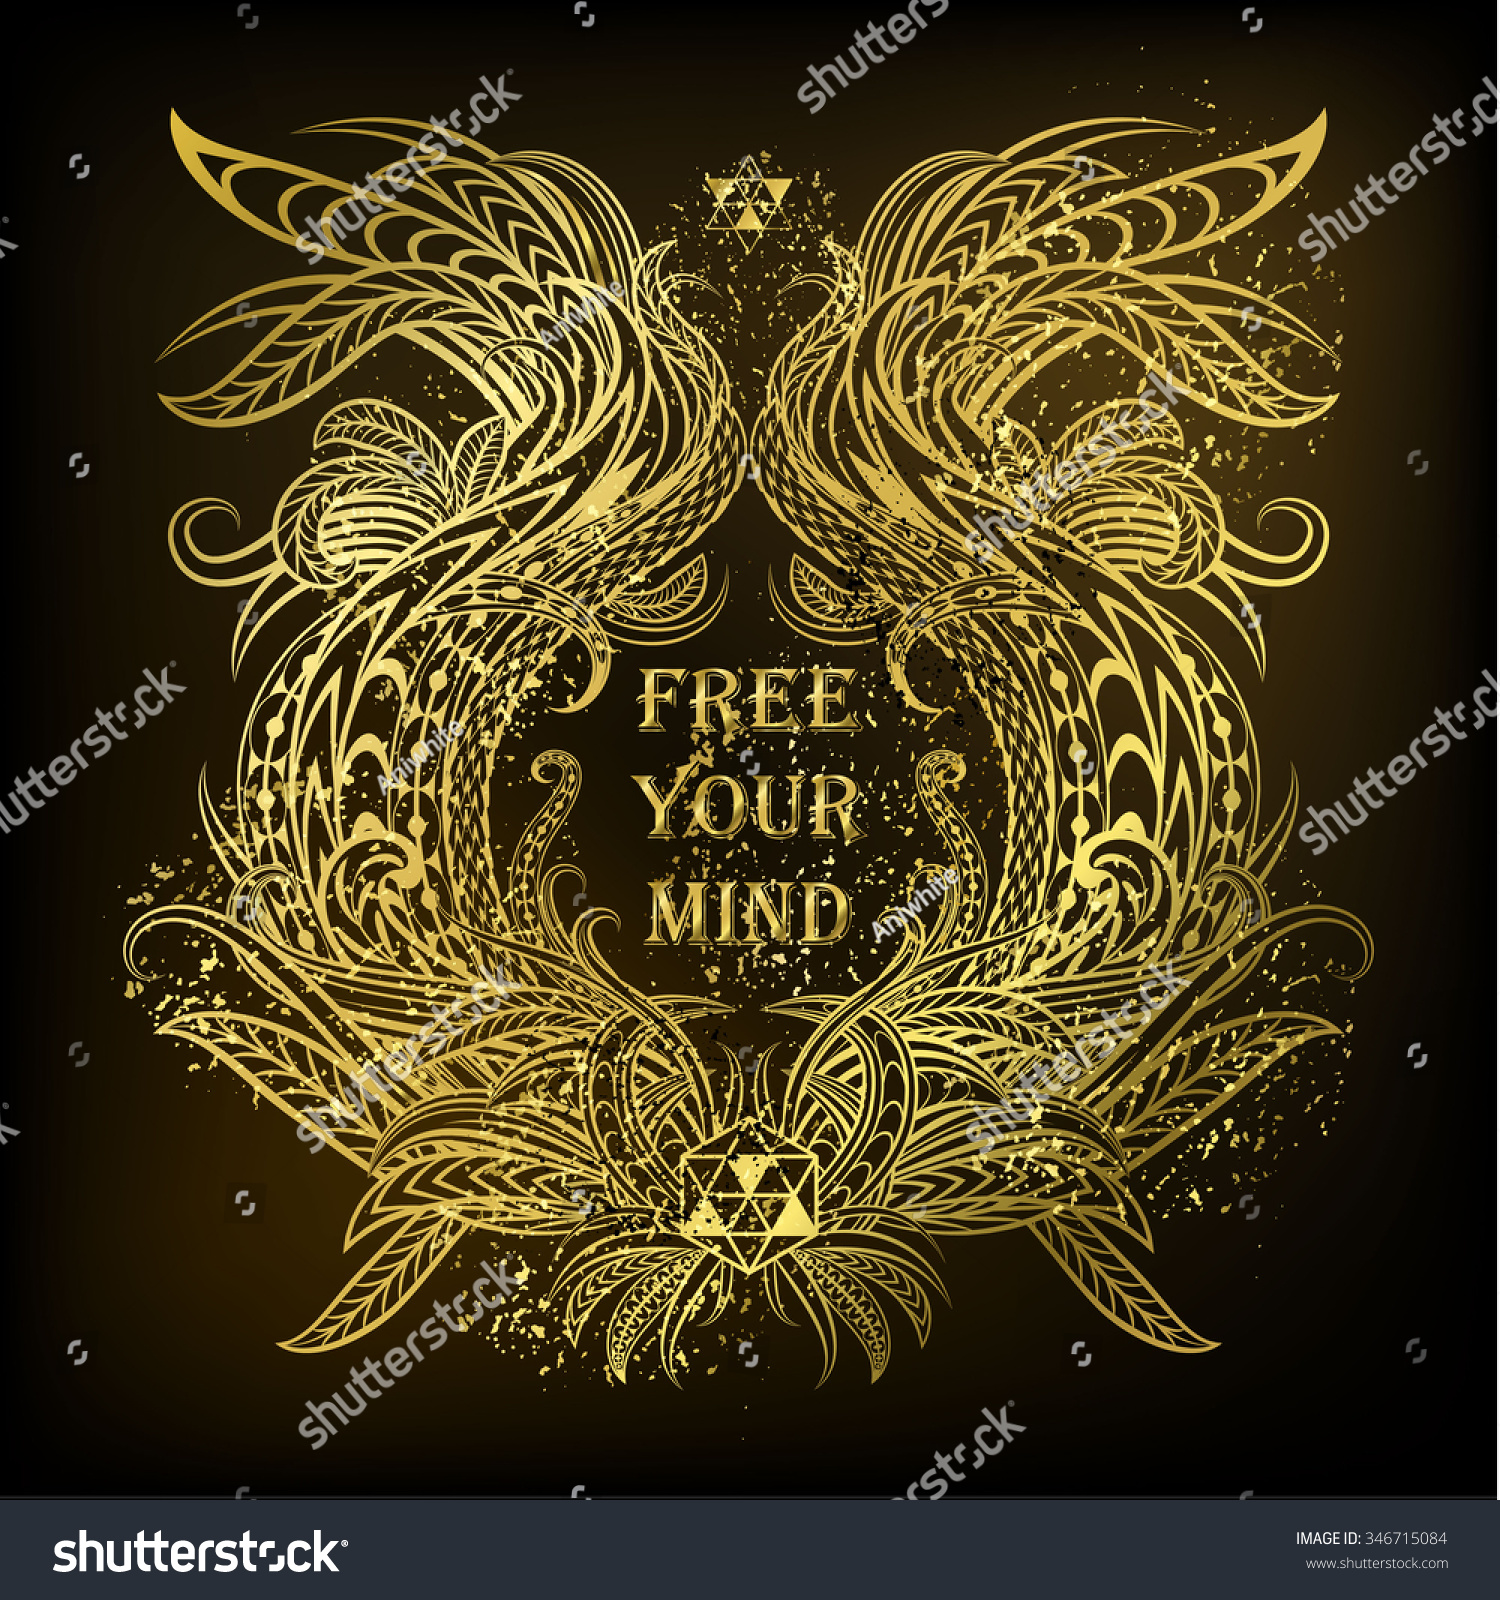 Free Your Mind Quotes Motivation Free Your Mind Golden Ethnic Stock Vector 346715084